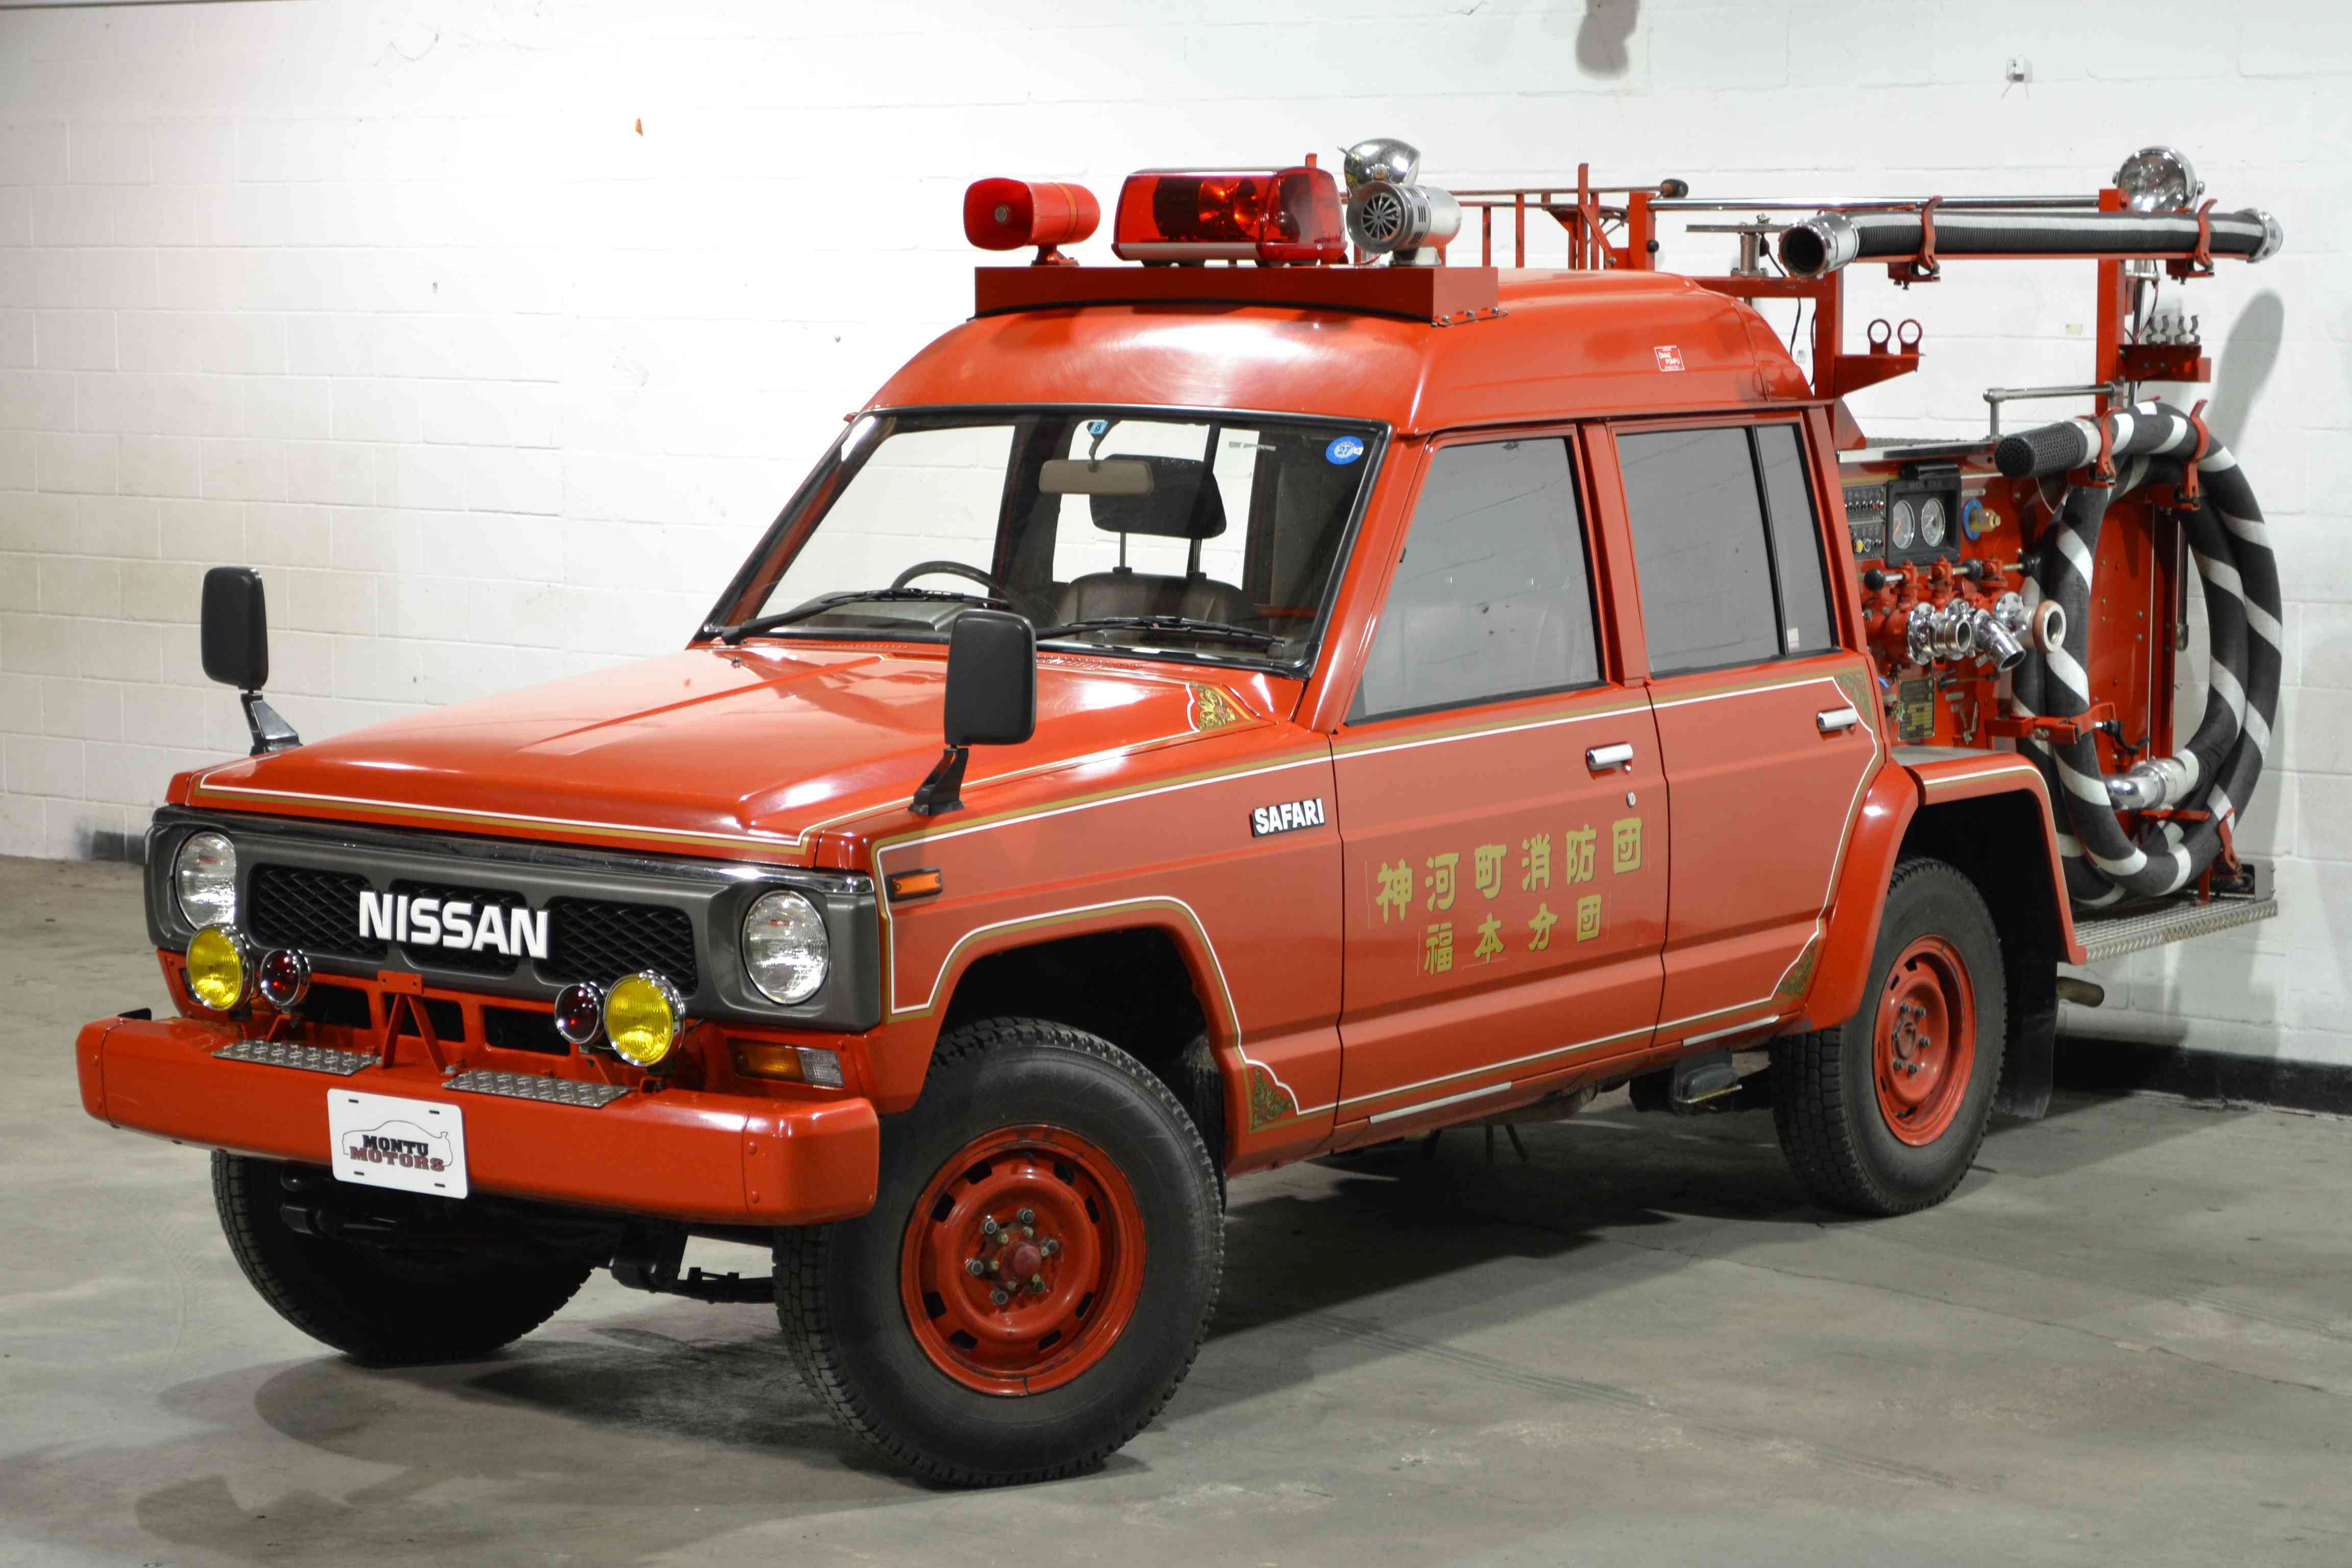 1990 Nissan Safari | Montu Motors